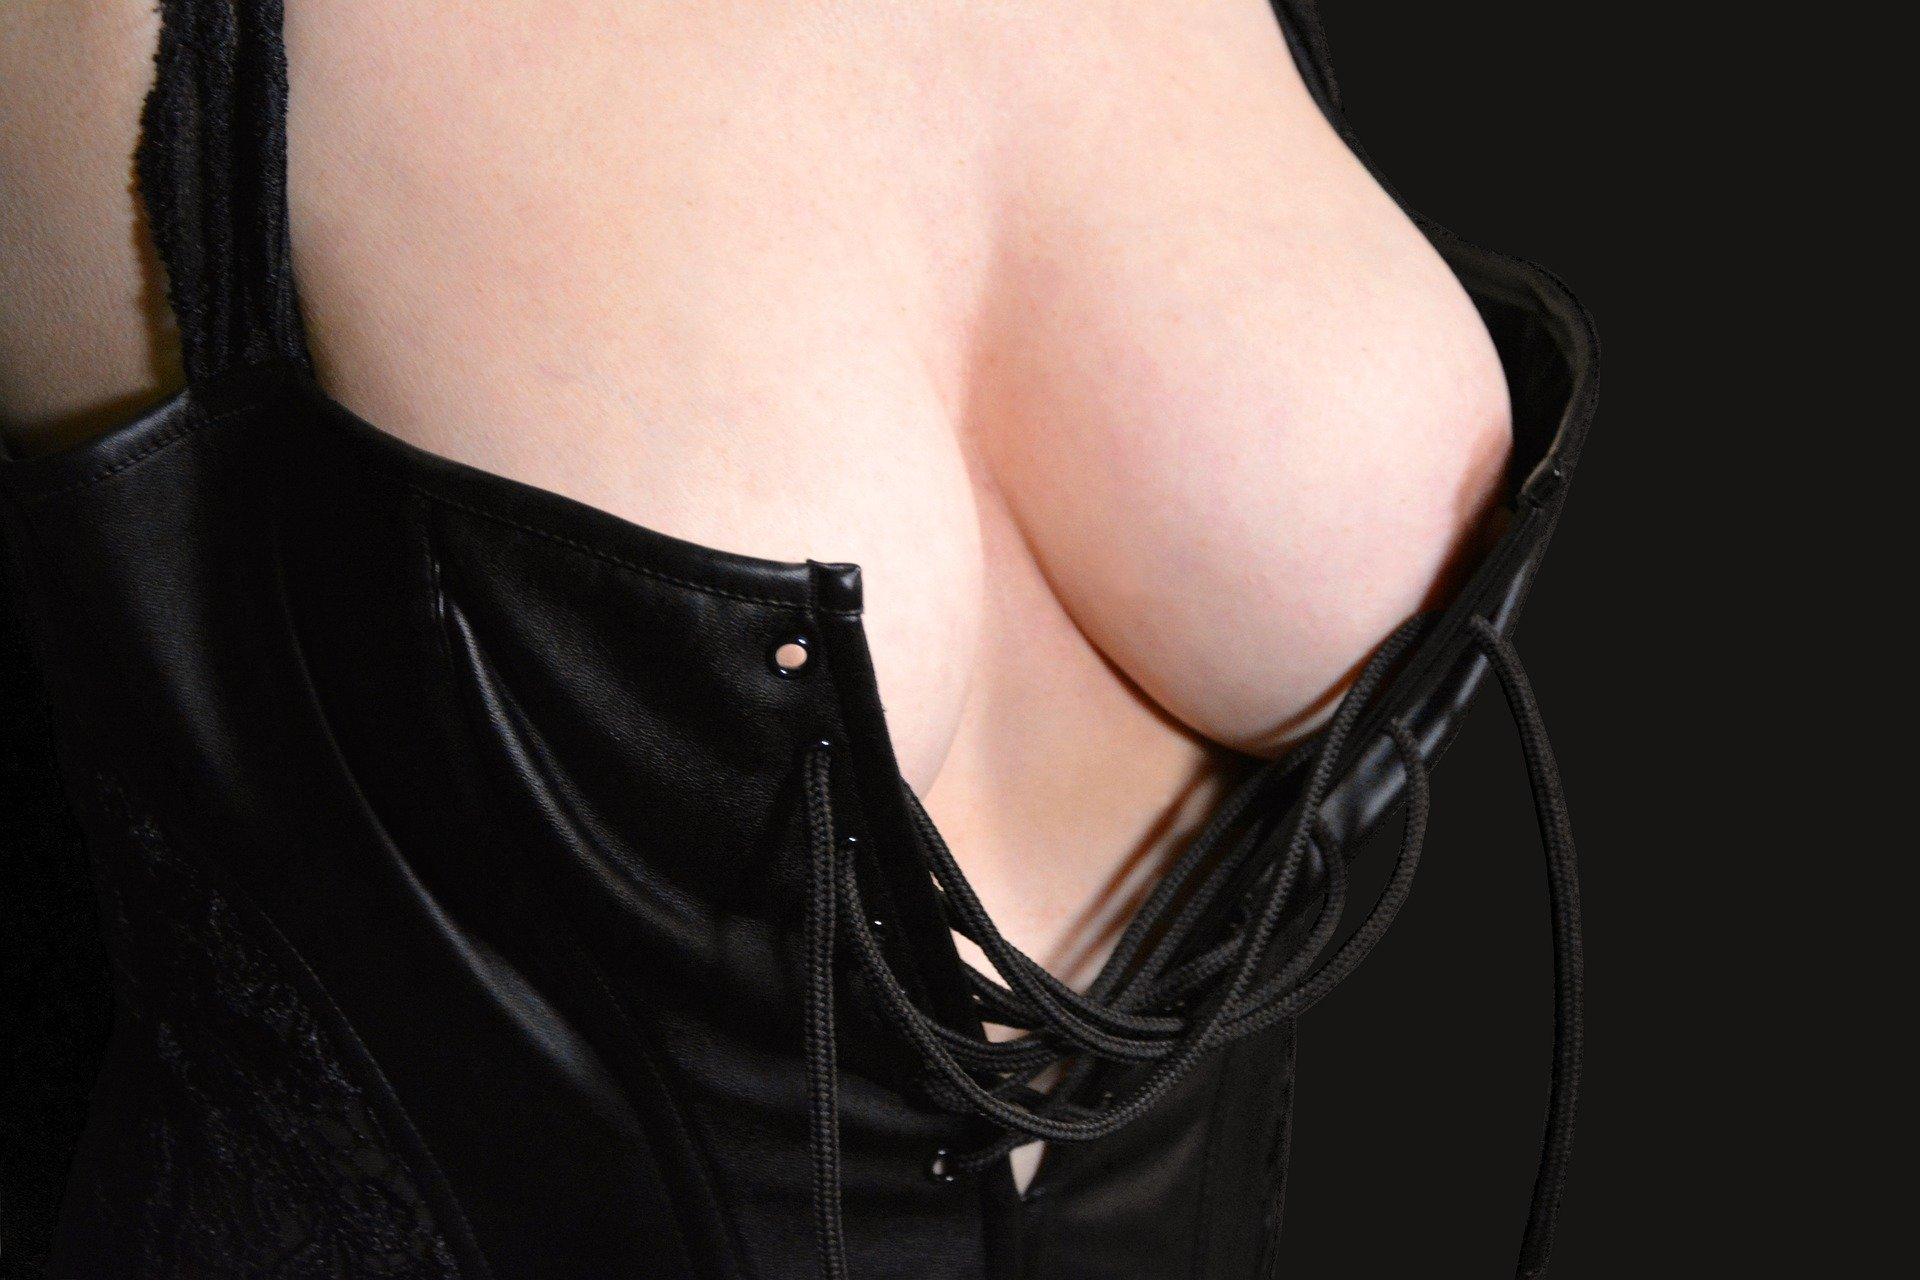 breasts 2293508 1920 - xvideoを超えるエロ動画サイト